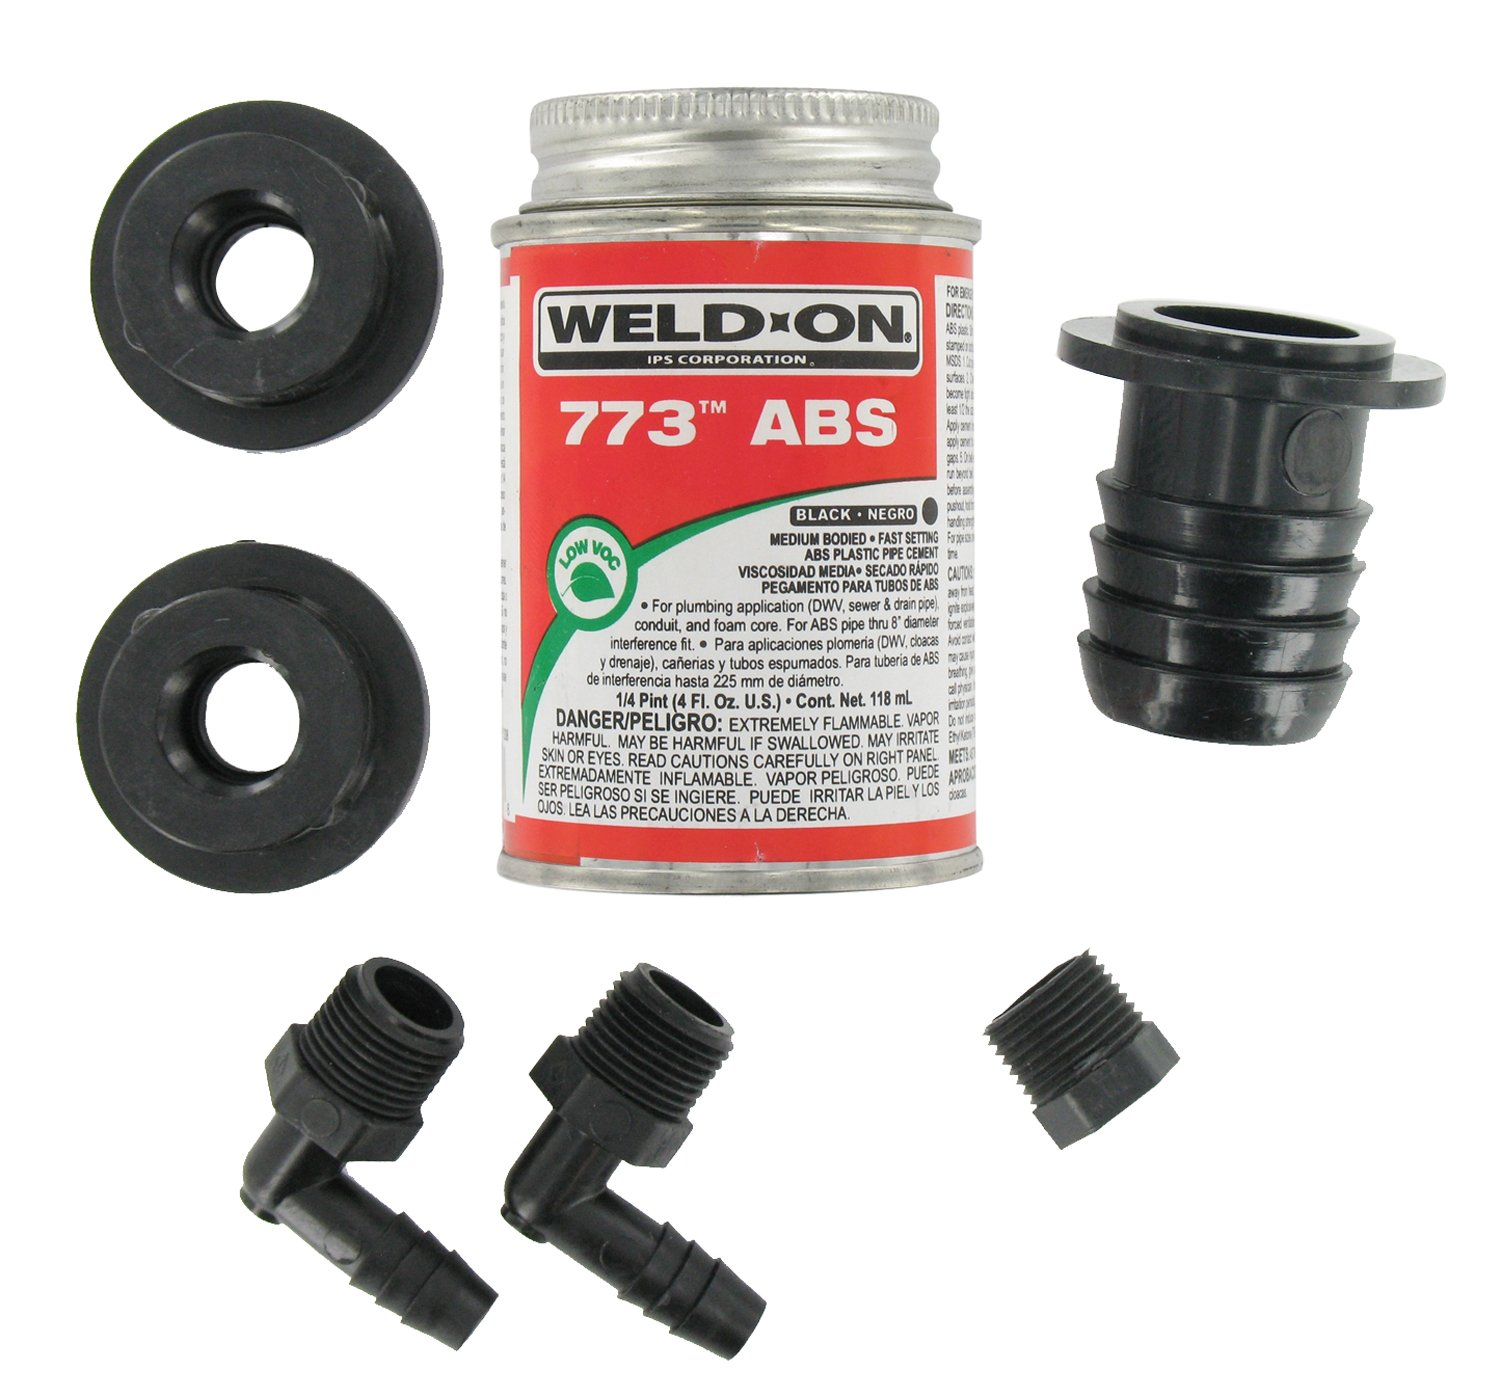 Valterra Black RK908 ABS Tank Kit-Straight Barbed Fill with Cement by Valterra